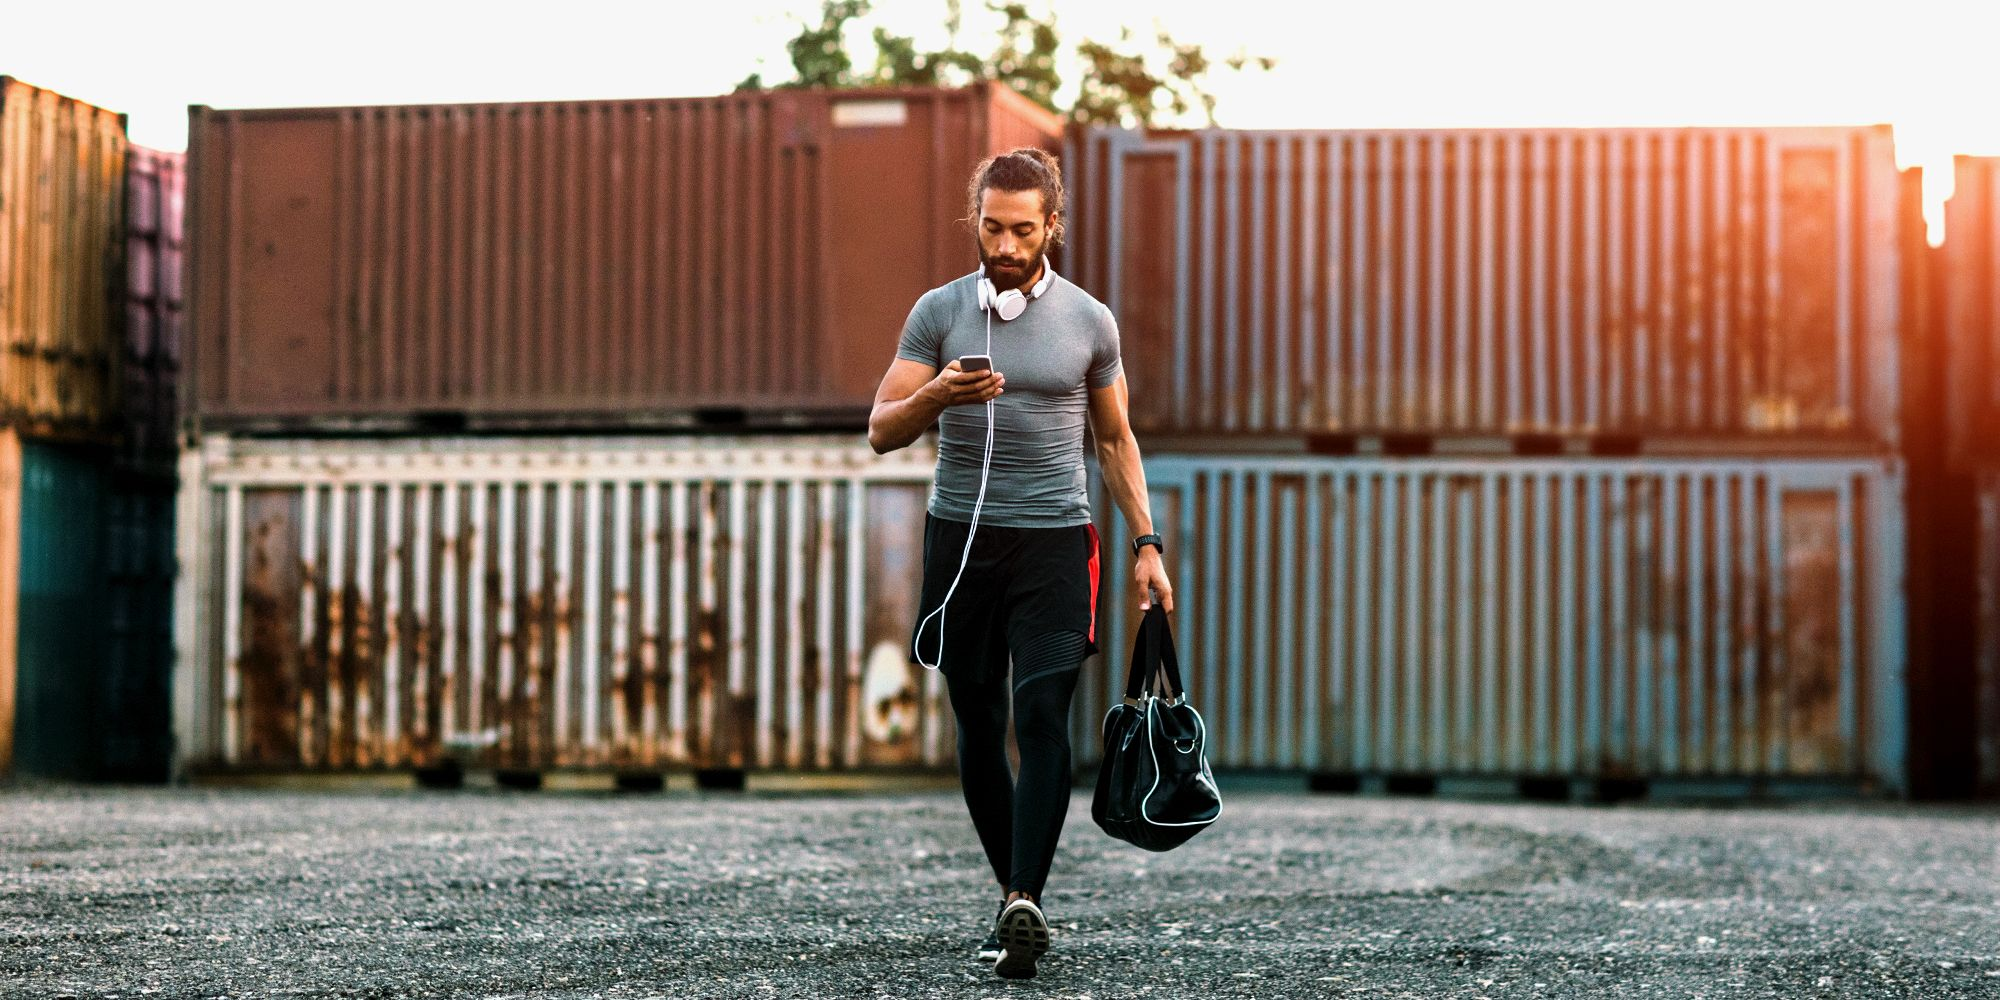 8 Best Gym Bags for Men in 2018 - Durable Mens Workout Bags 6f5d5d158c552